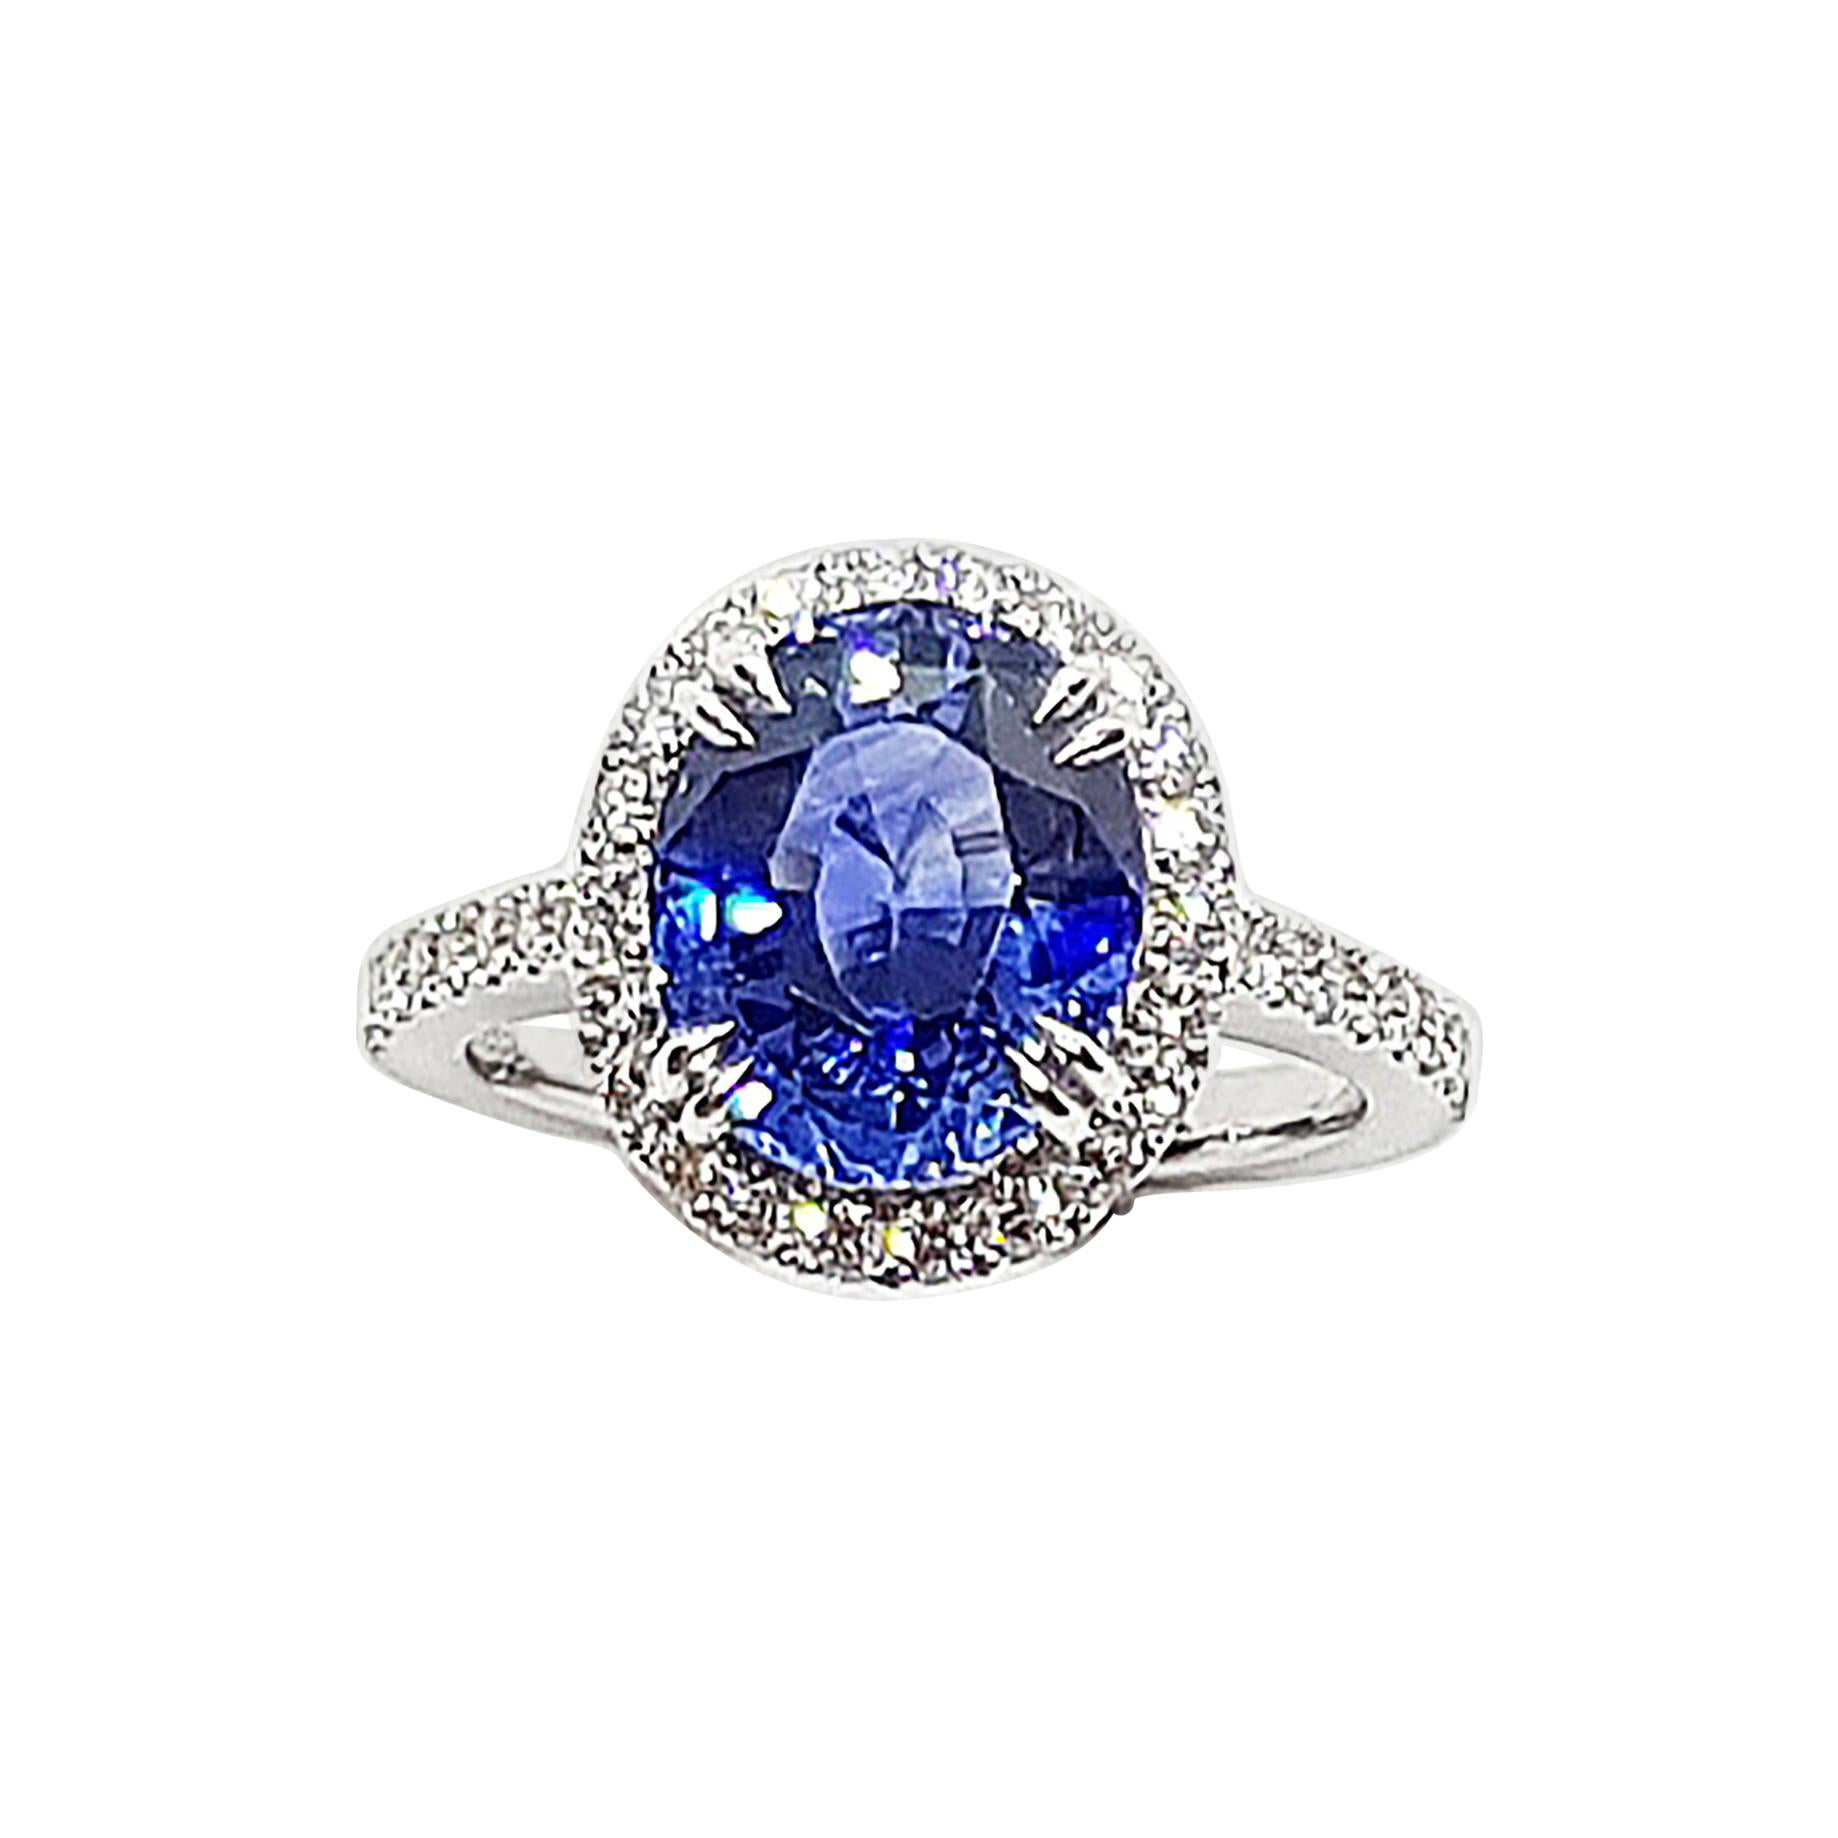 Blue Sapphire with Diamond Ring Set in Platinum 950 Settings